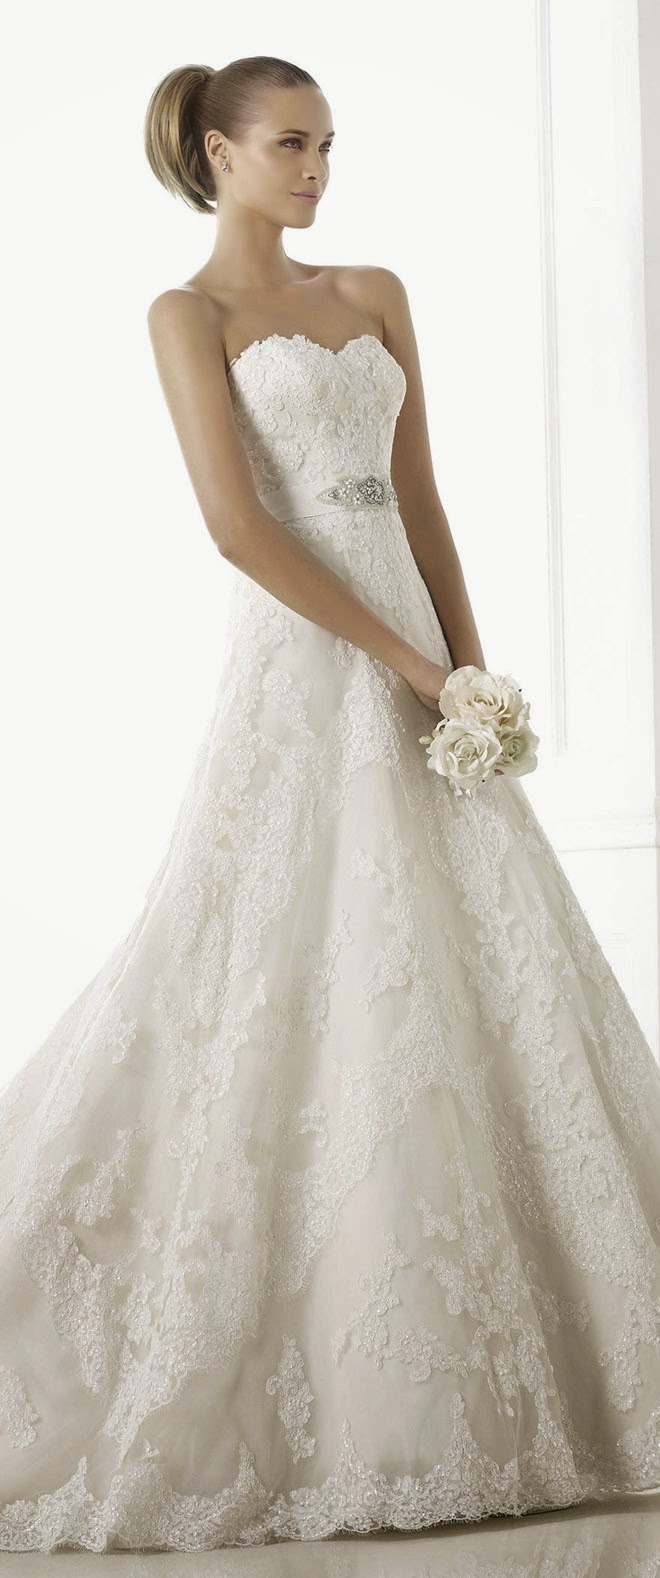 Best Wedding Dresses of 2014 - Pronovias